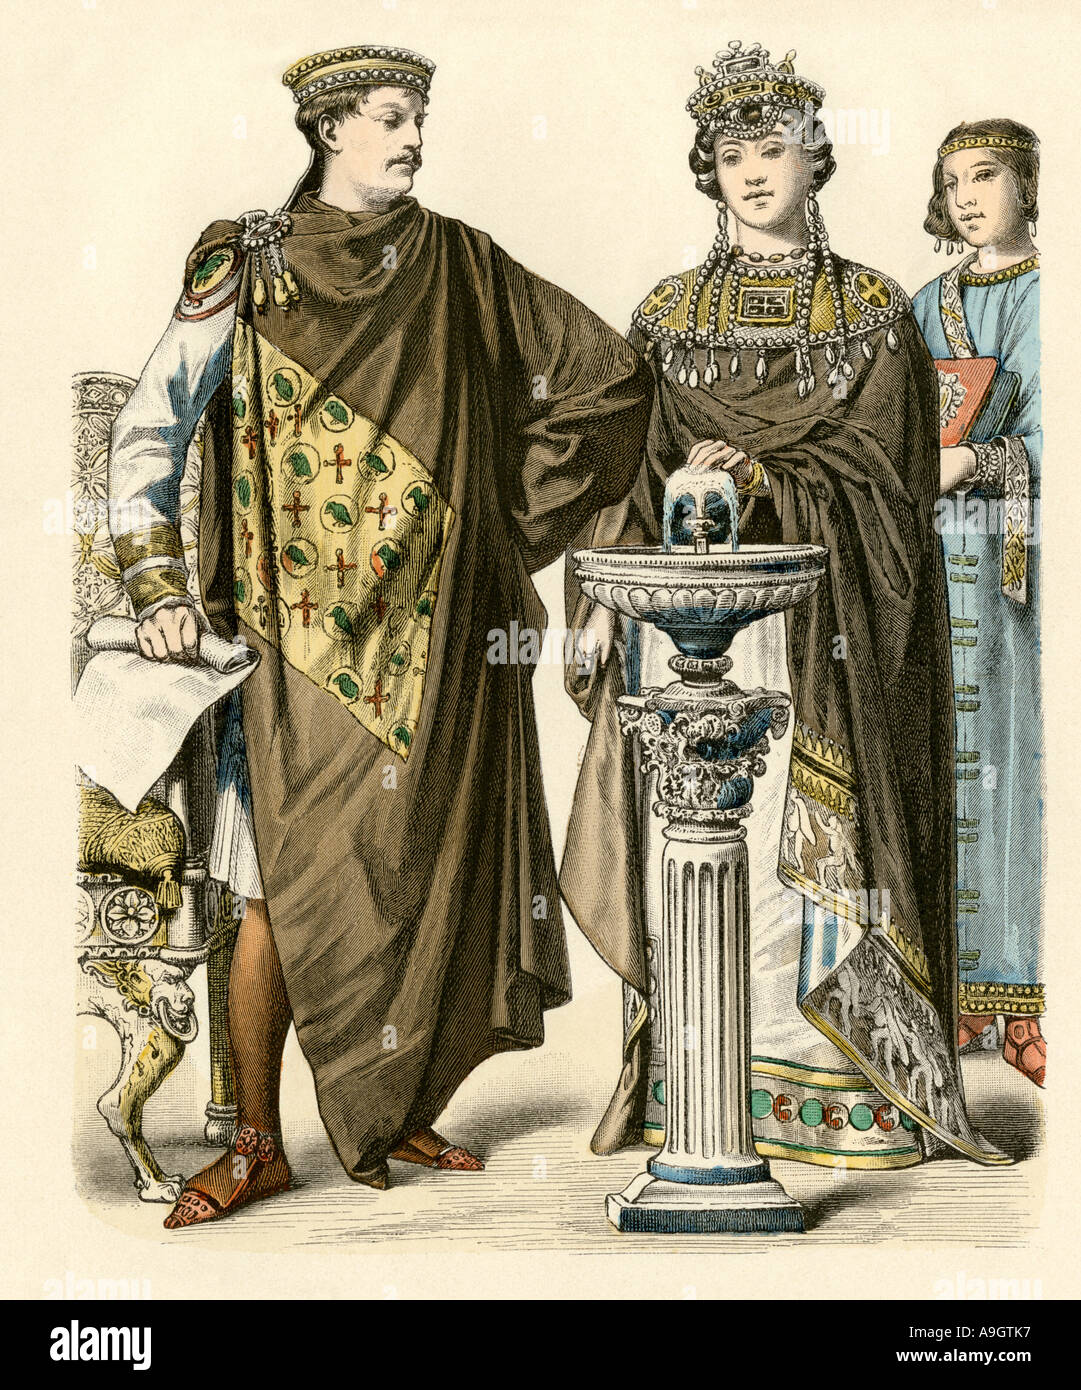 Emperor Justinian with Empress Theodora of the Eastern Roman Empire 500s AD. Hand-colored print - Stock Image